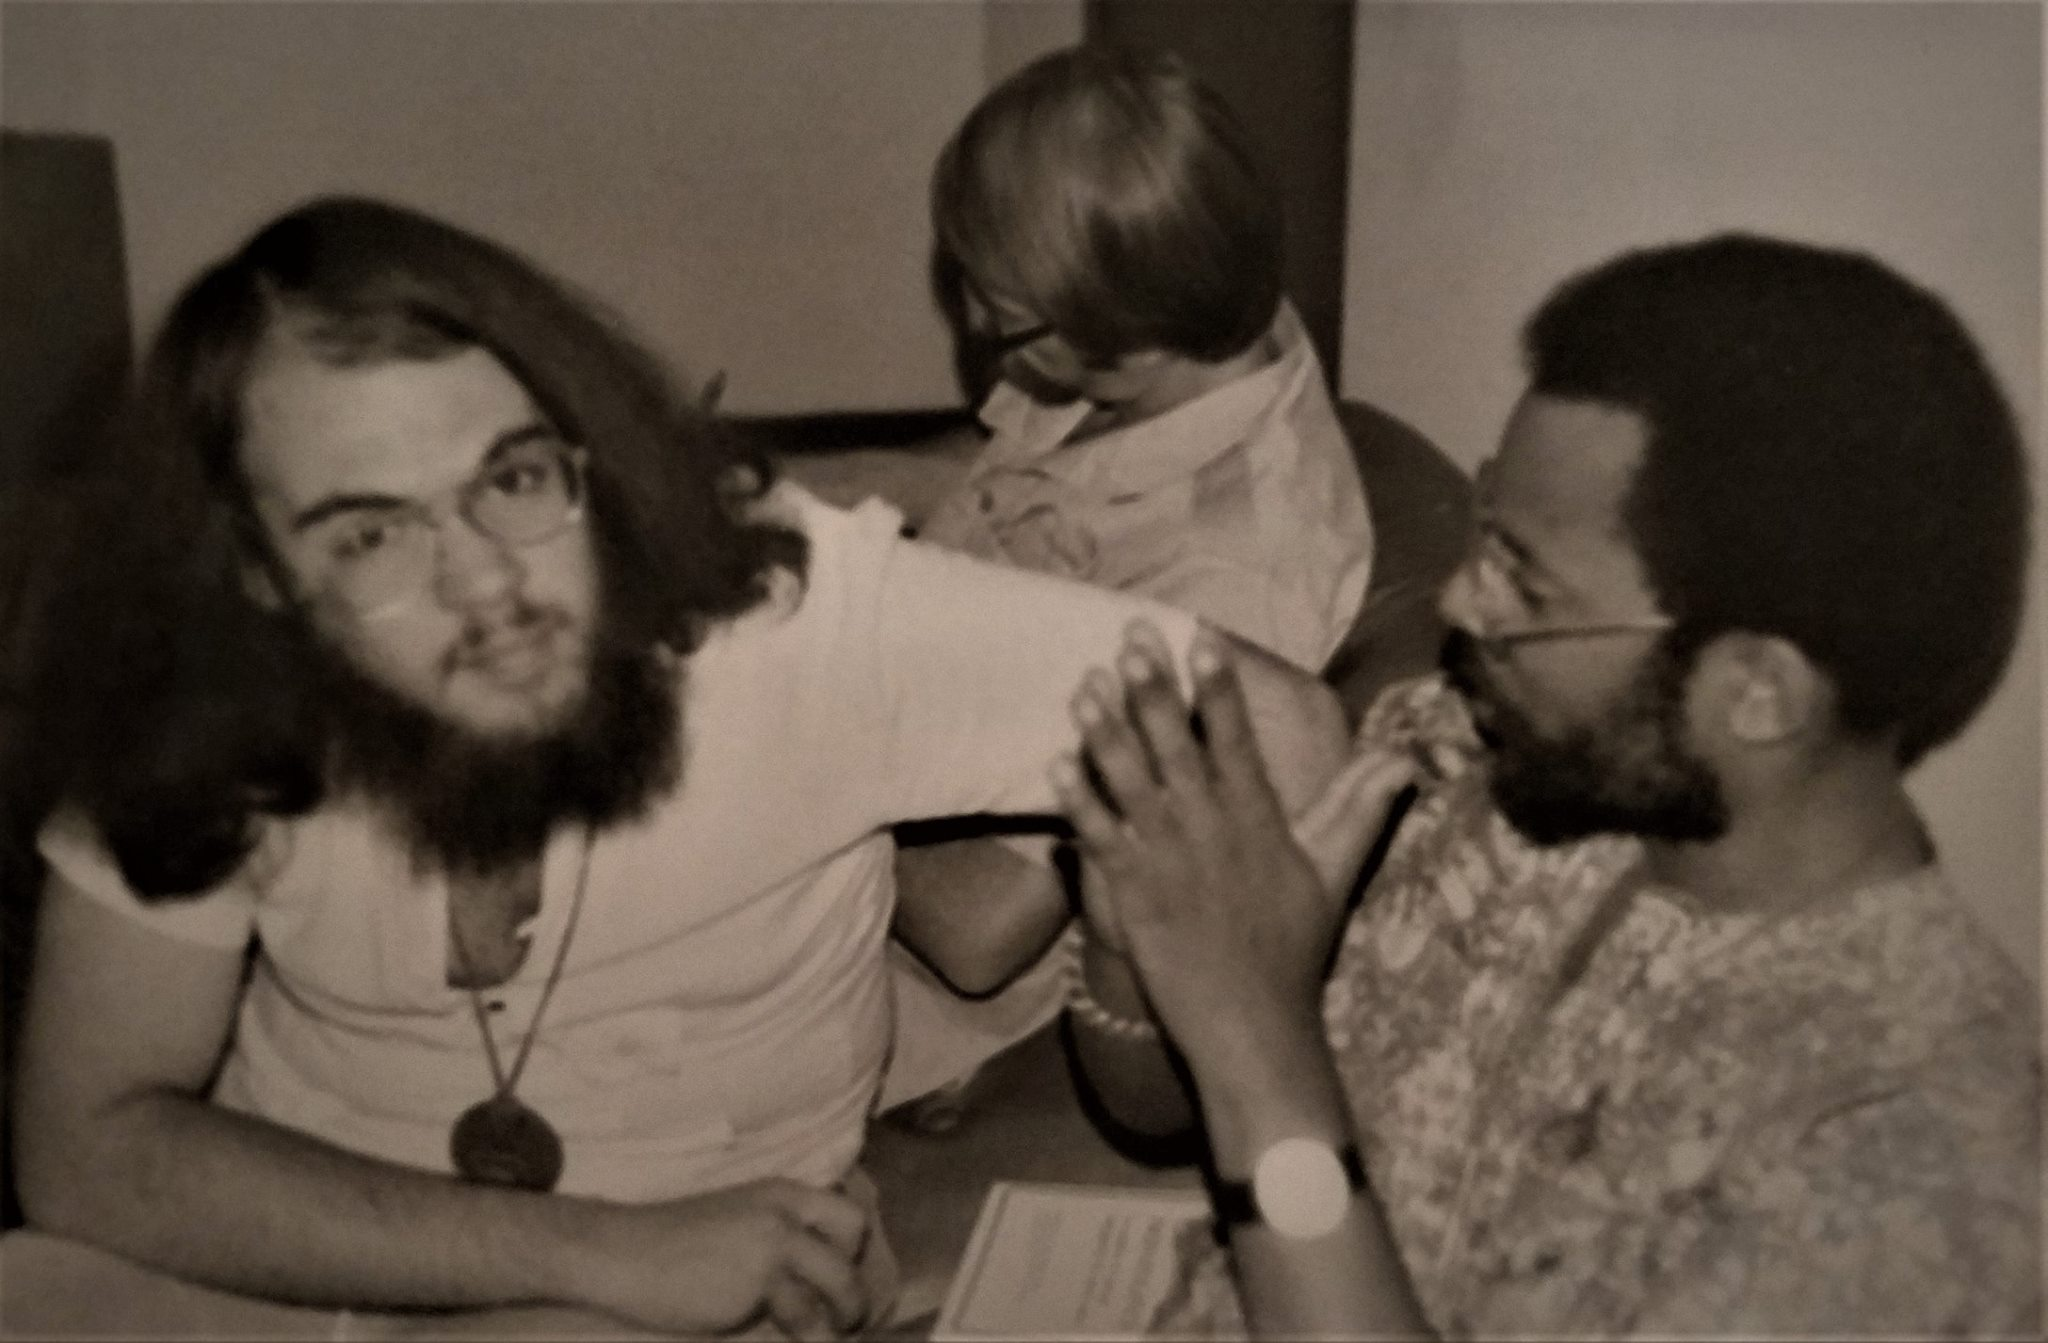 Matt Meyer, Duane Shank, and Mark Harrison - 1982 Nicaragua interfaith delegation